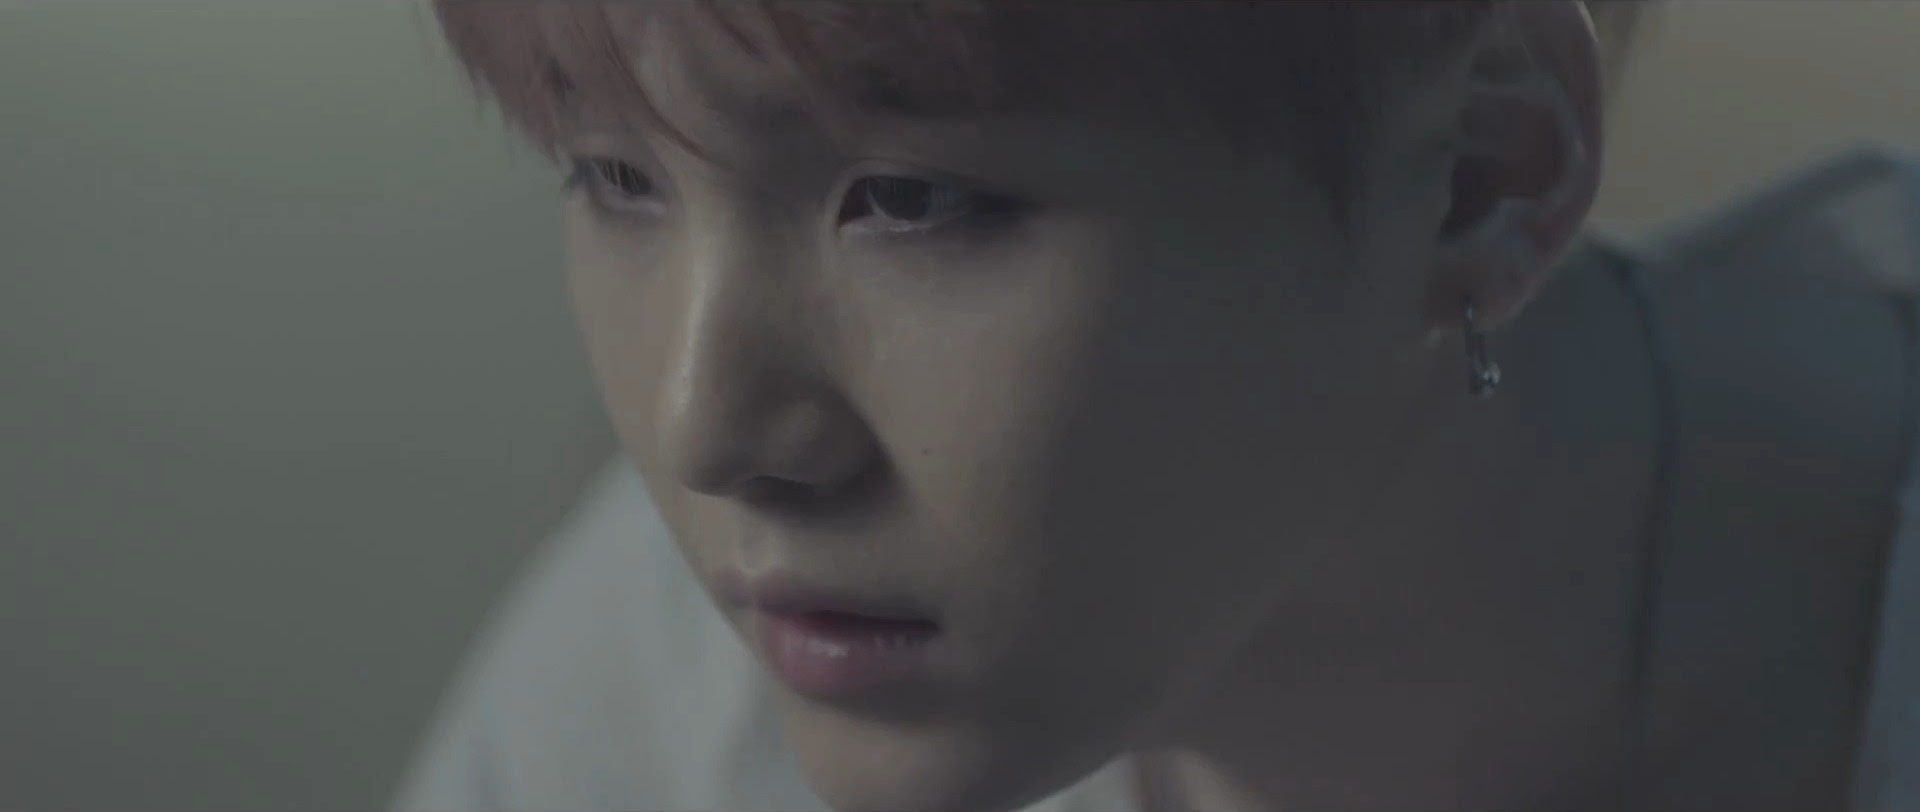 Bangtan's SUGA in I Need You MV